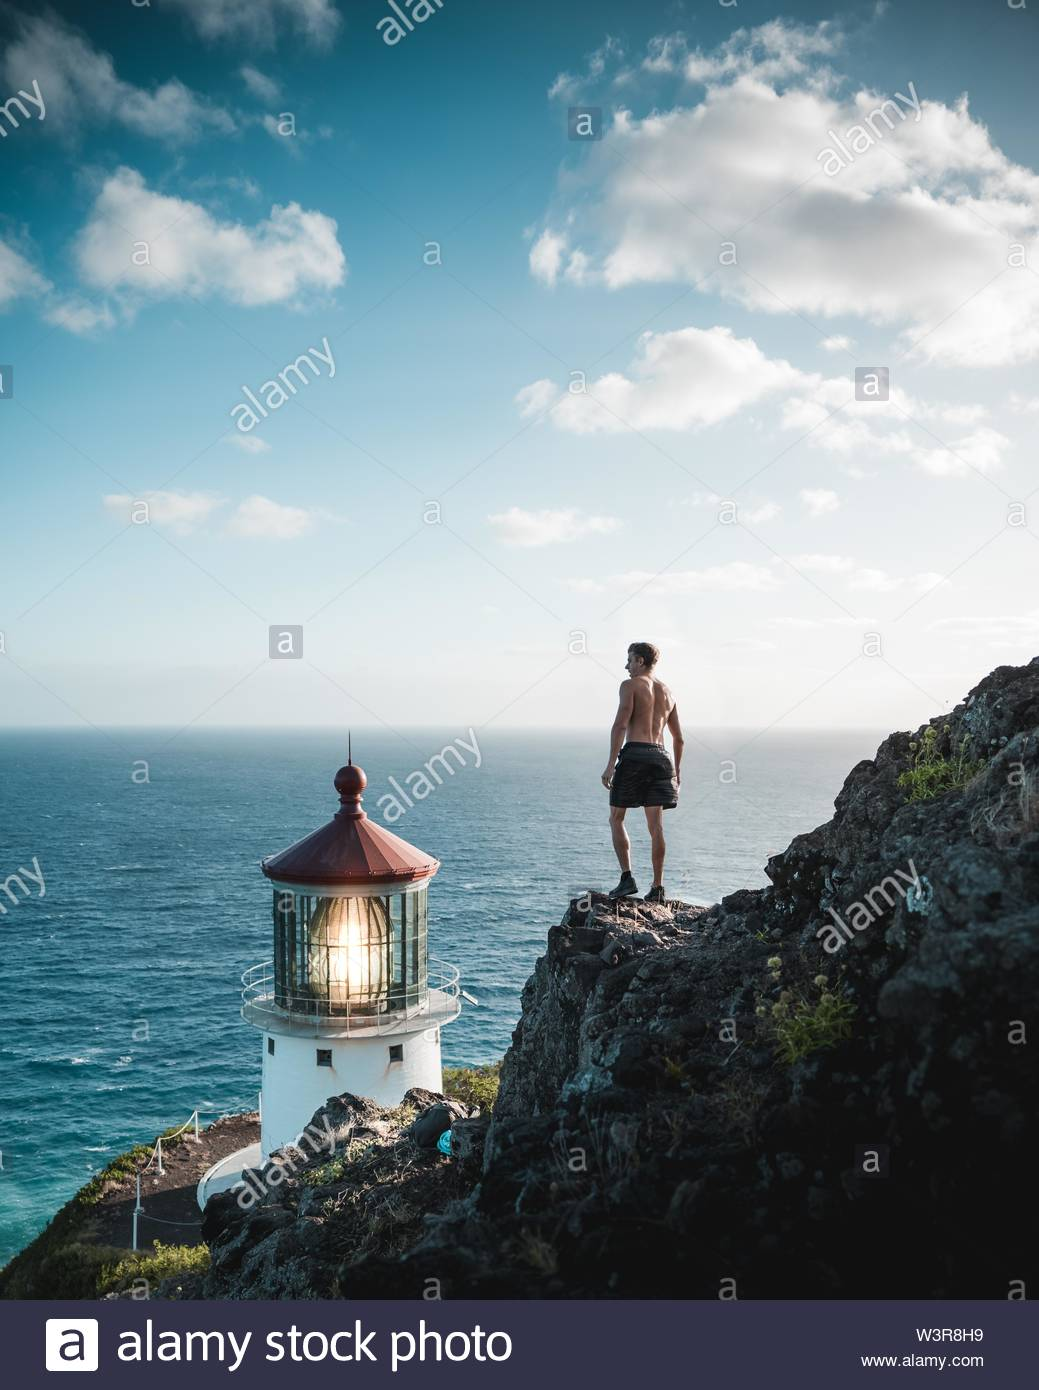 A shirtless fit male standing on a rocky cliff near a lighthouse beacon and the sea - Stock Image